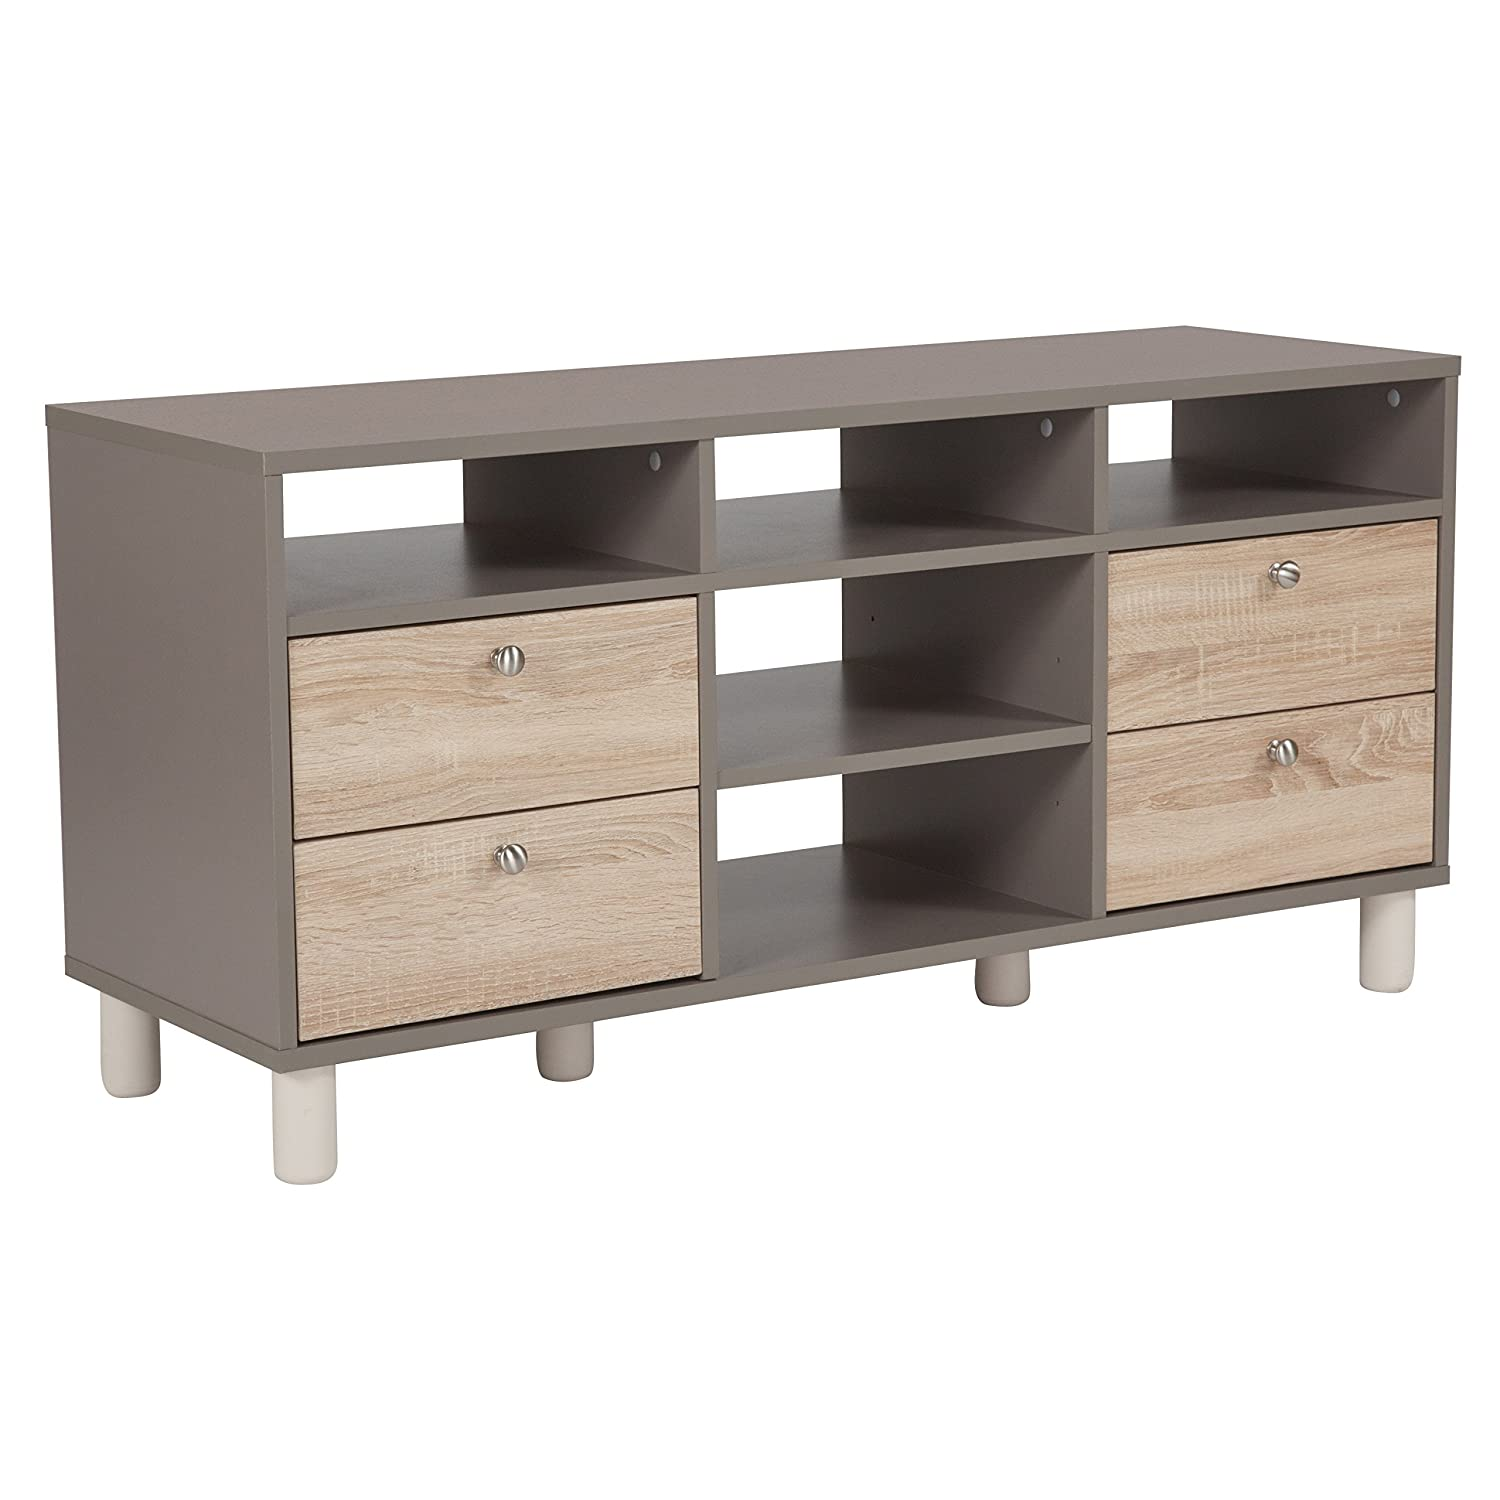 Amazon com flash furniture montclair collection tv stand in gray finish with sonoma oak wood grain drawers kitchen dining